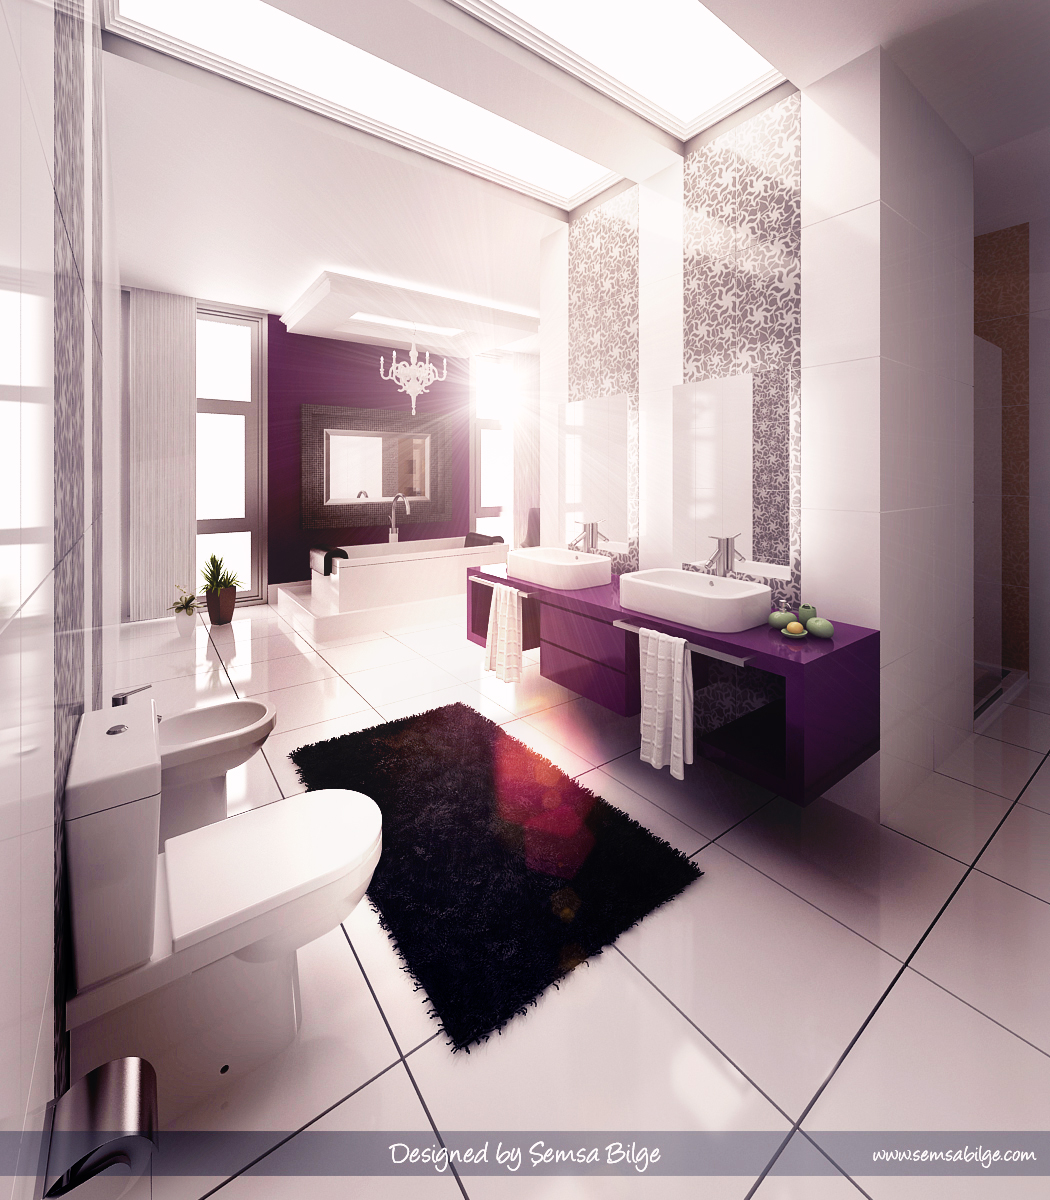 bathroom designs ideas interior design interior decorating